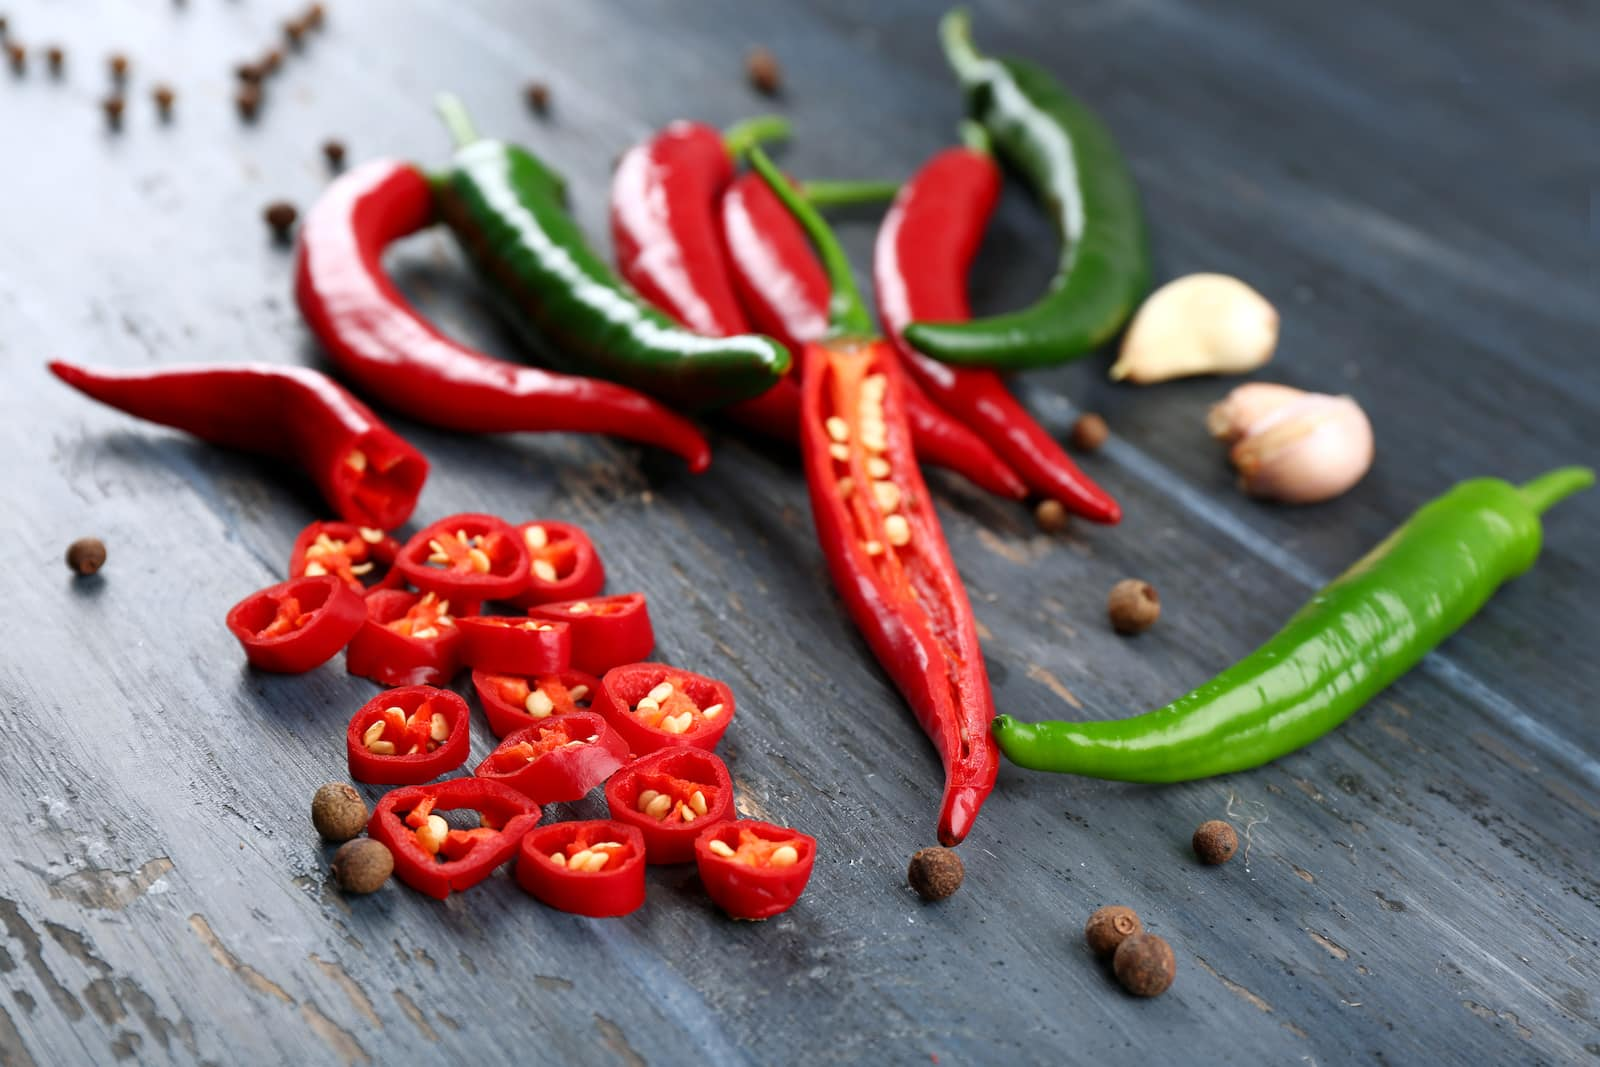 Does Spicy Food Cause Acne?